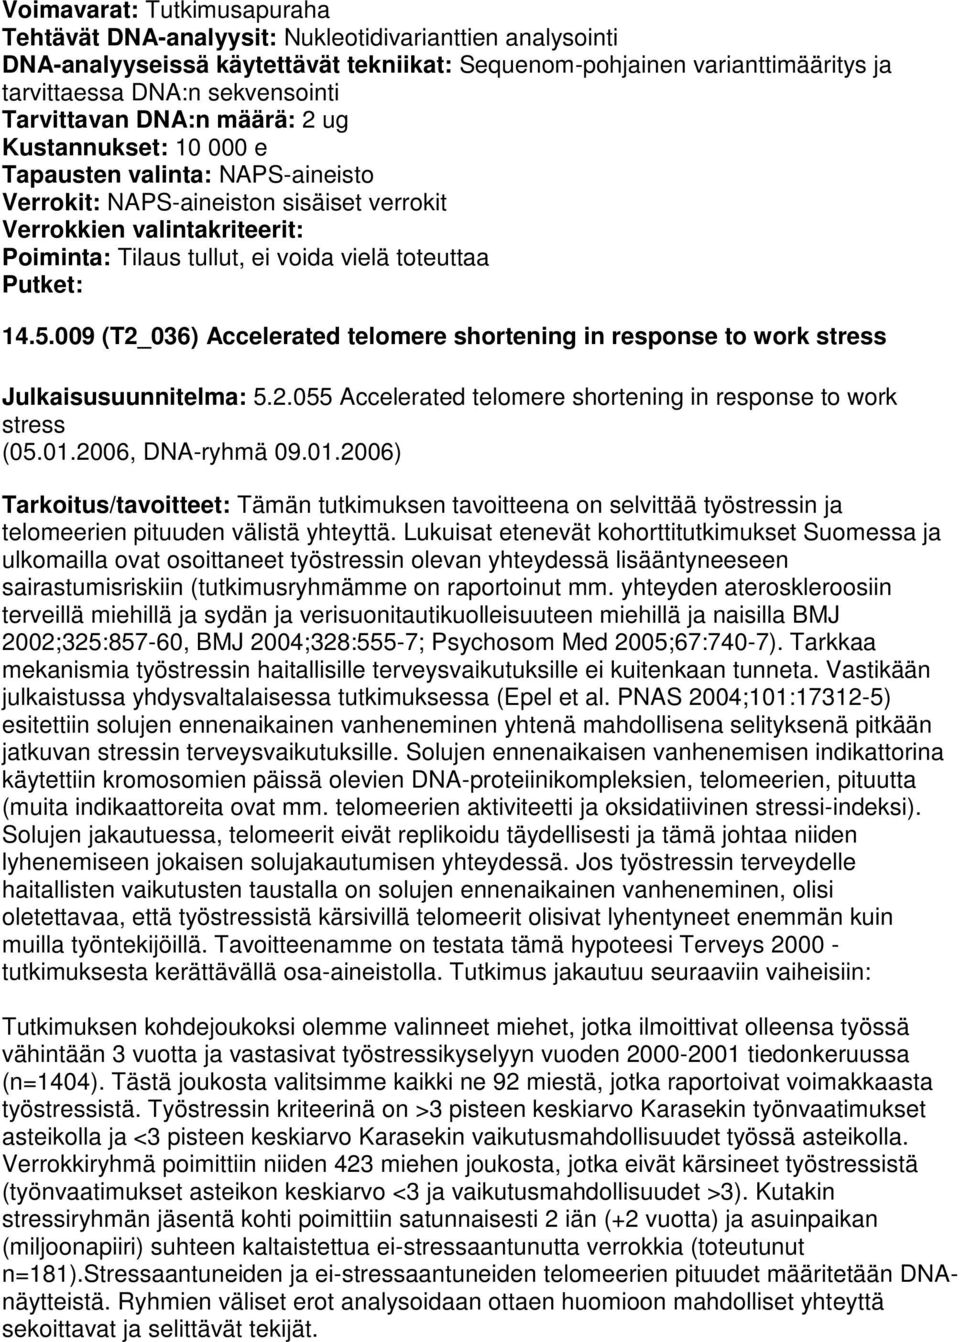 toteuttaa Putket: 14.5.009 (T2_036) Accelerated telomere shortening in response to work stress Julkaisusuunnitelma: 5.2.055 Accelerated telomere shortening in response to work stress (05.01.